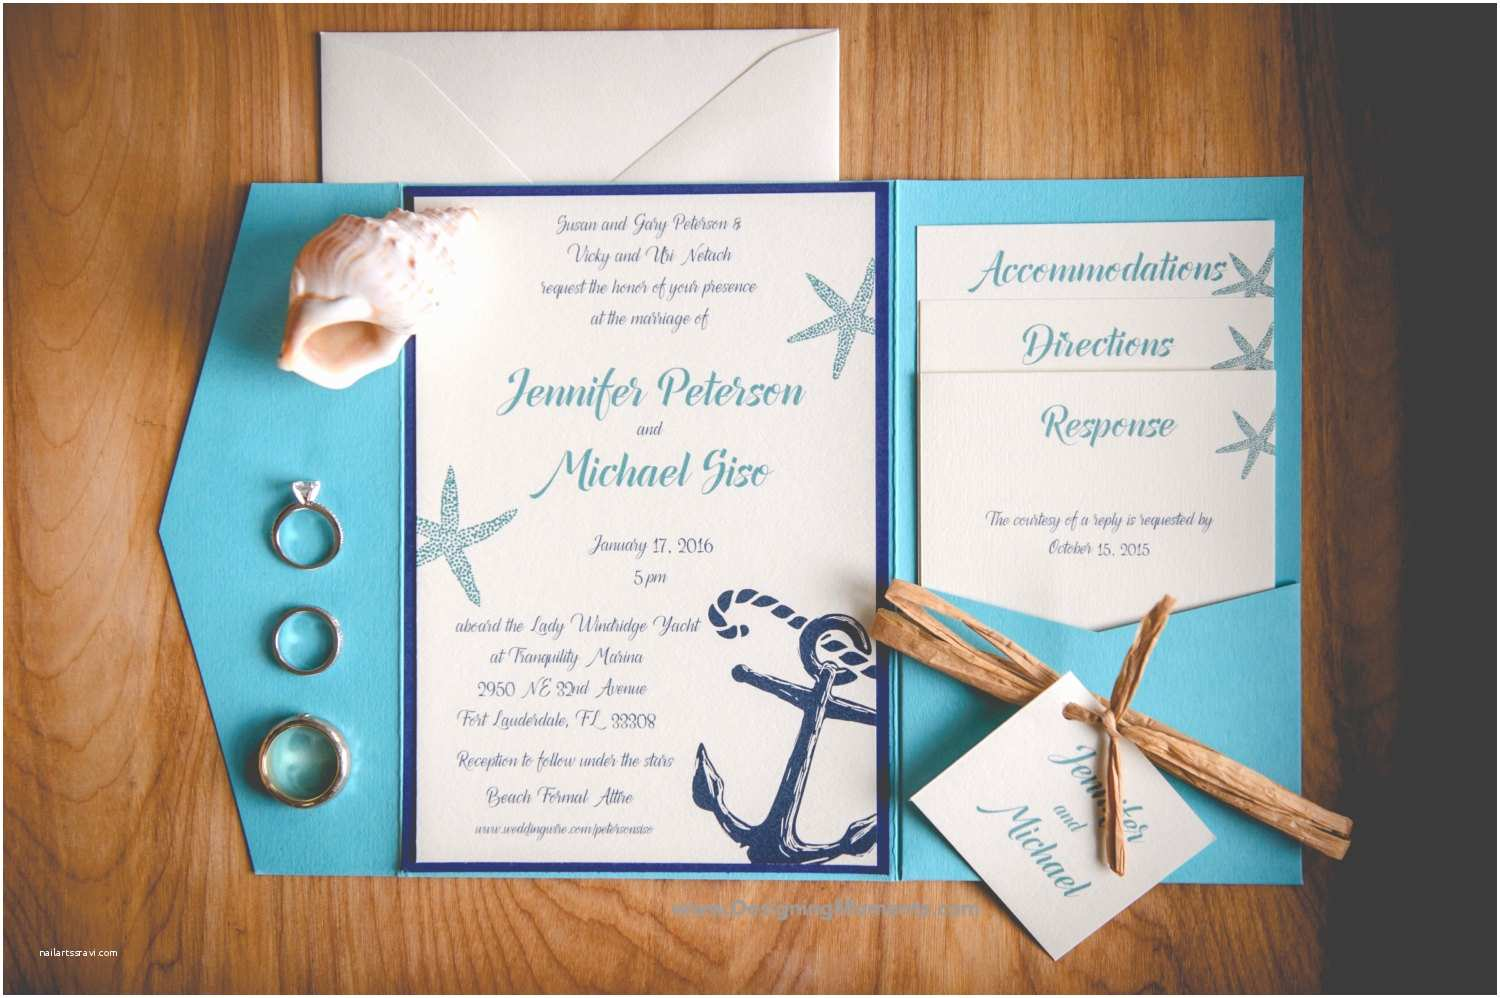 Beach Wedding Invitations Online Spread the Word with Stylish and original Beach Wedding